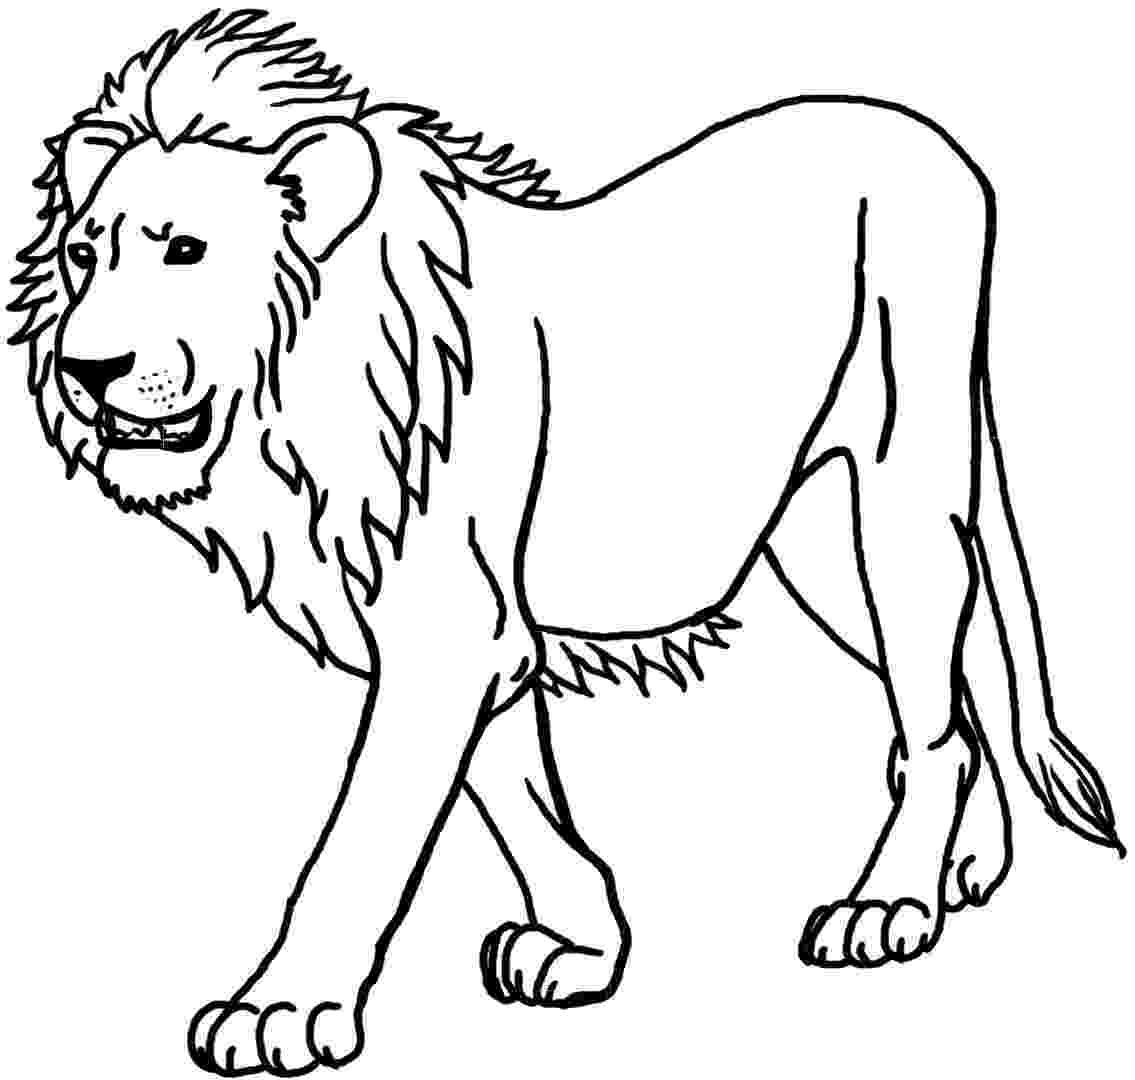 lion coloring sheets lion coloring pages to download and print for free sheets lion coloring